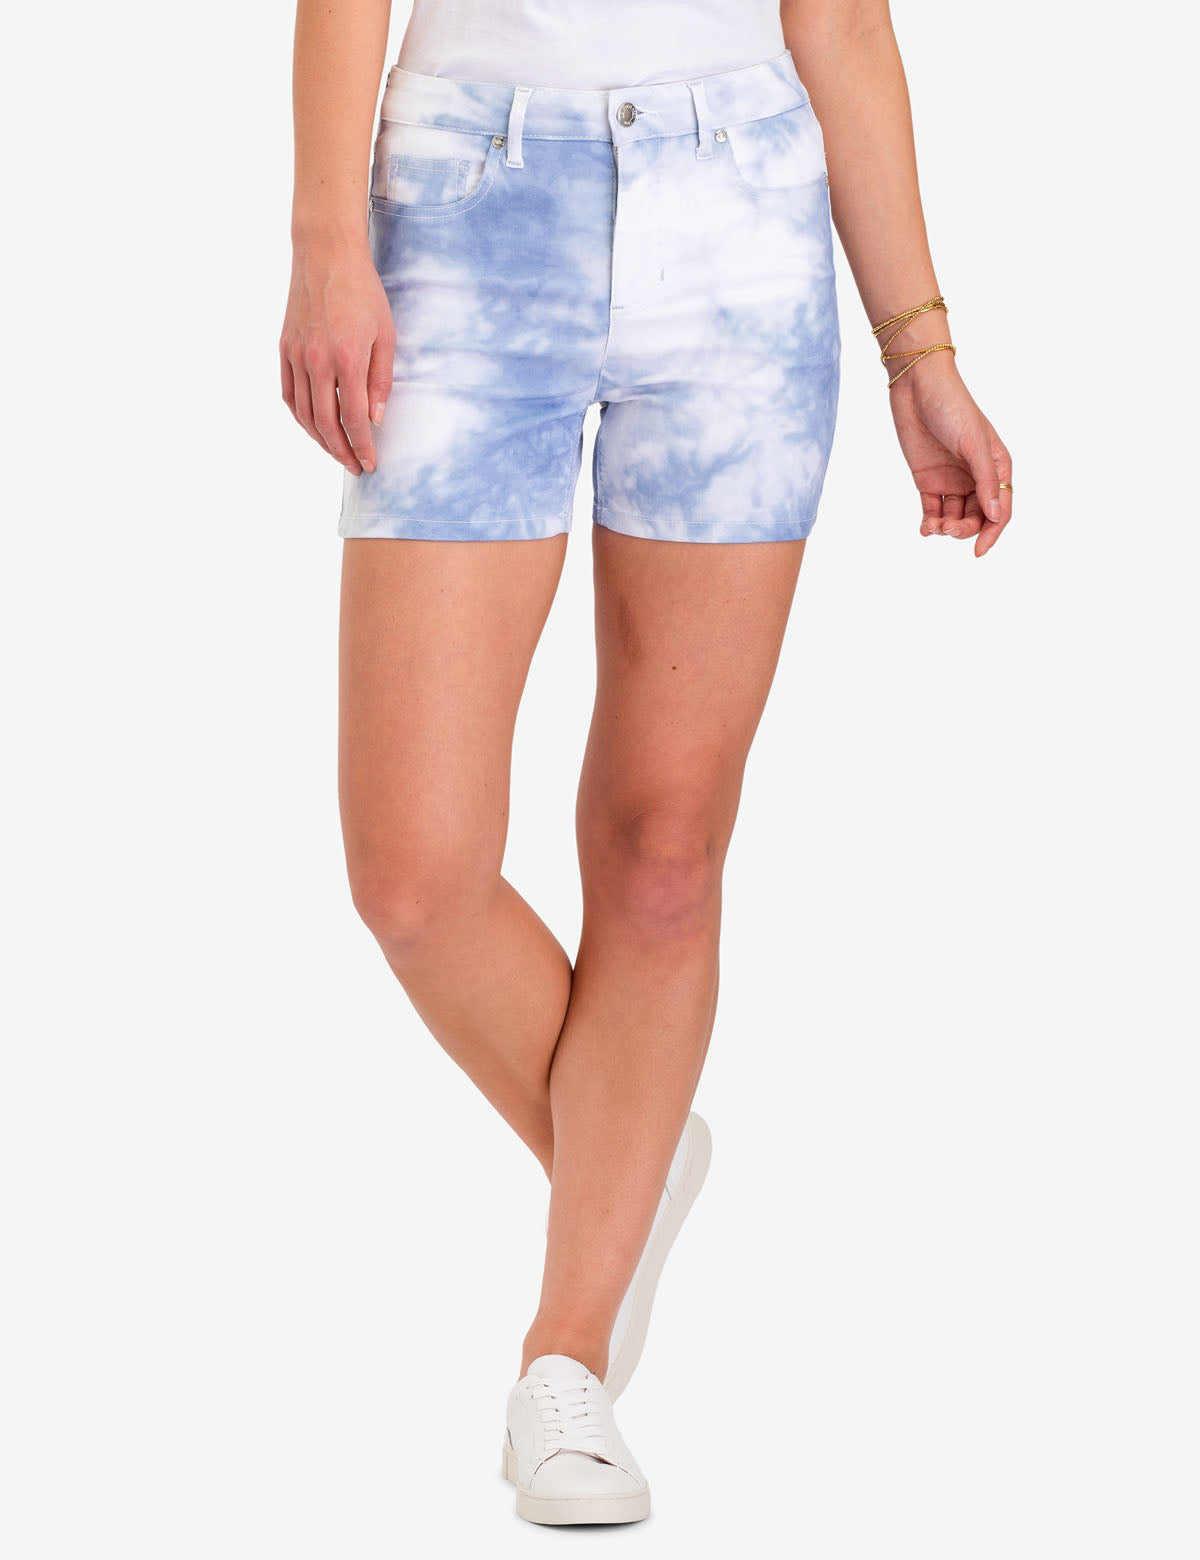 TIE DYE DENIM SHORTS - U.S. Polo Assn.